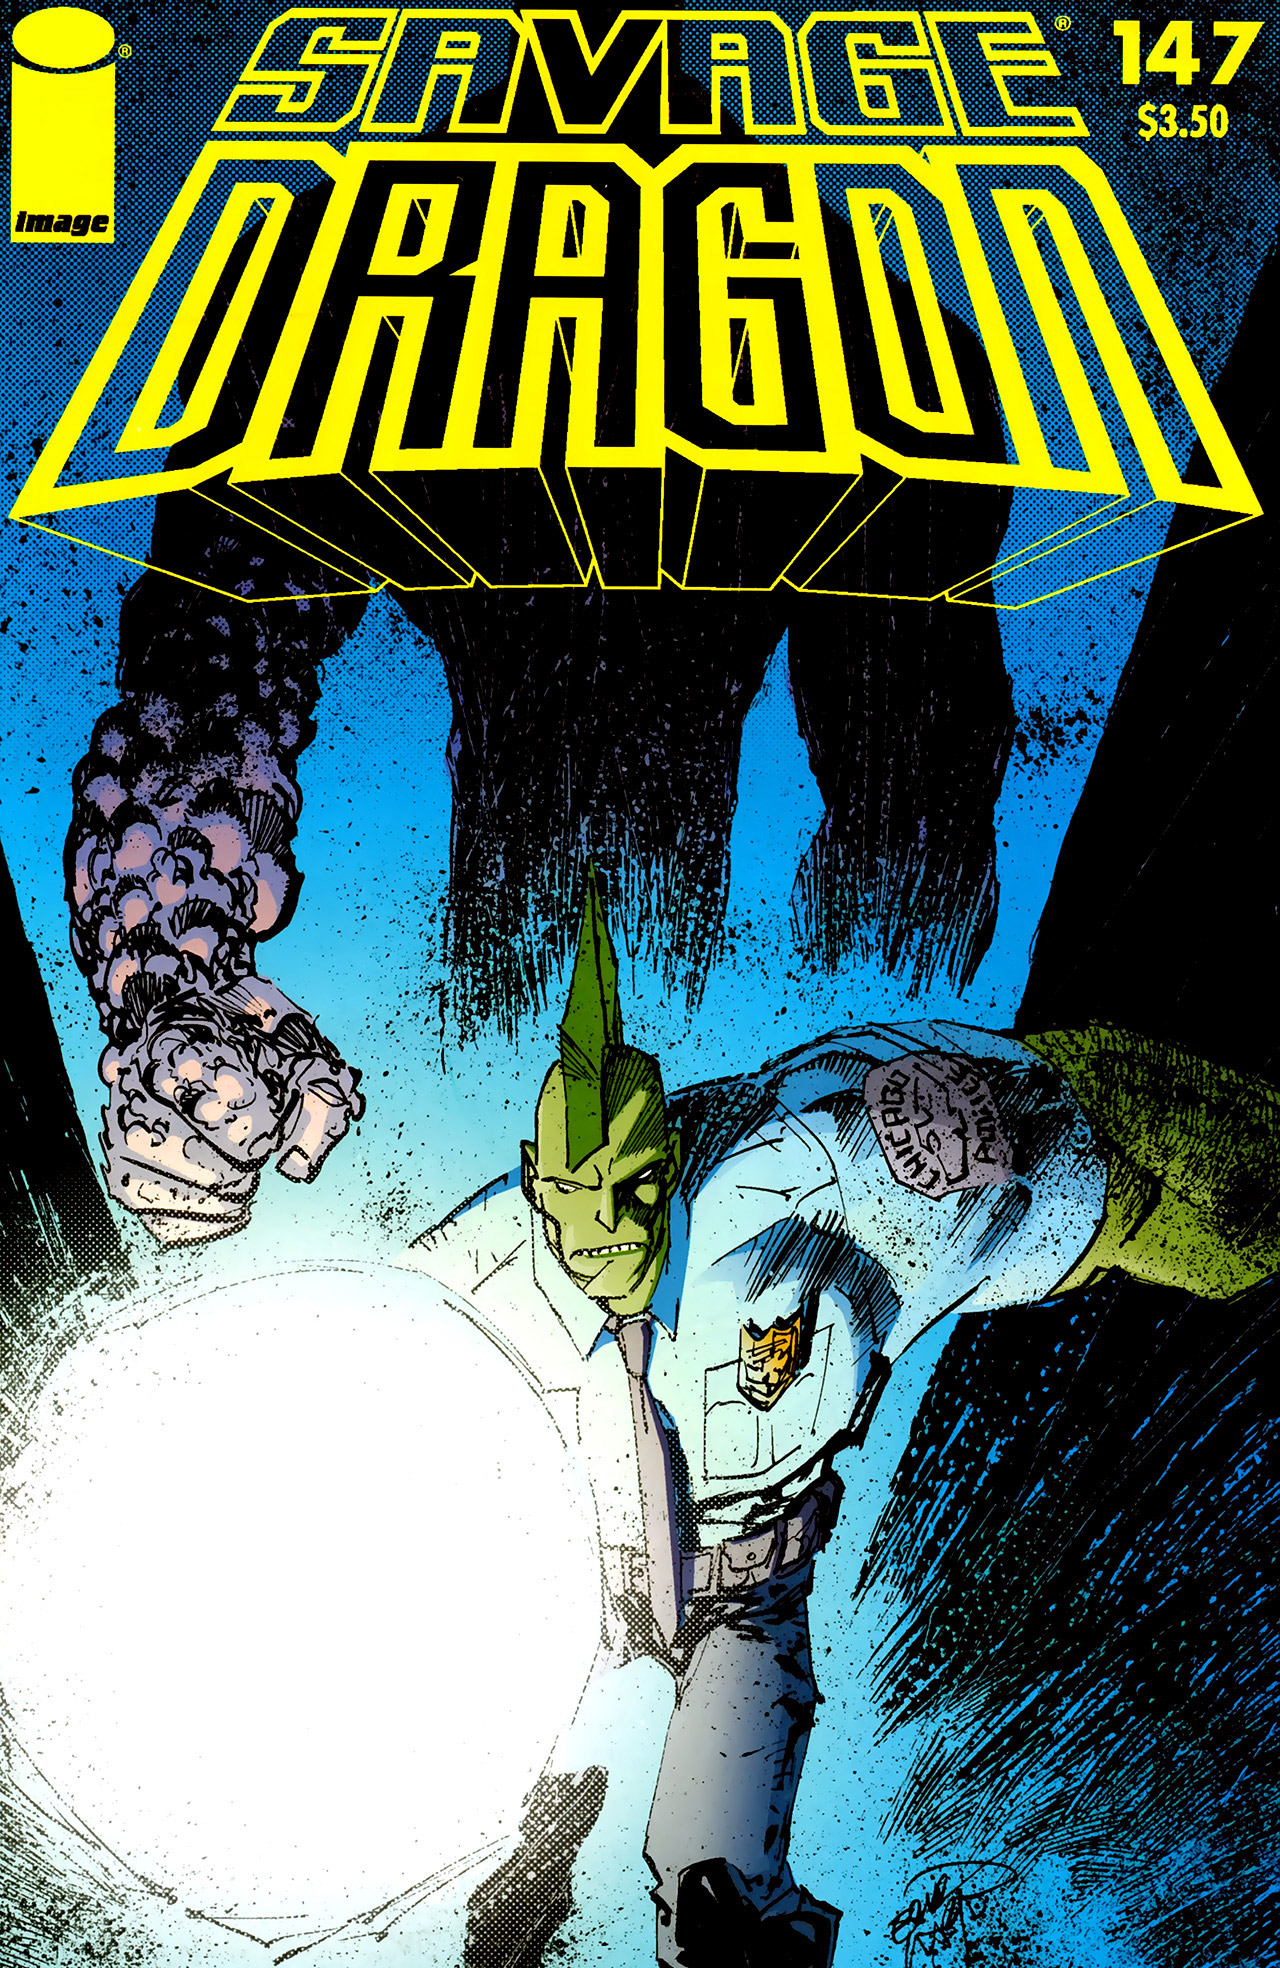 Cover Savage Dragon Vol.2 #147